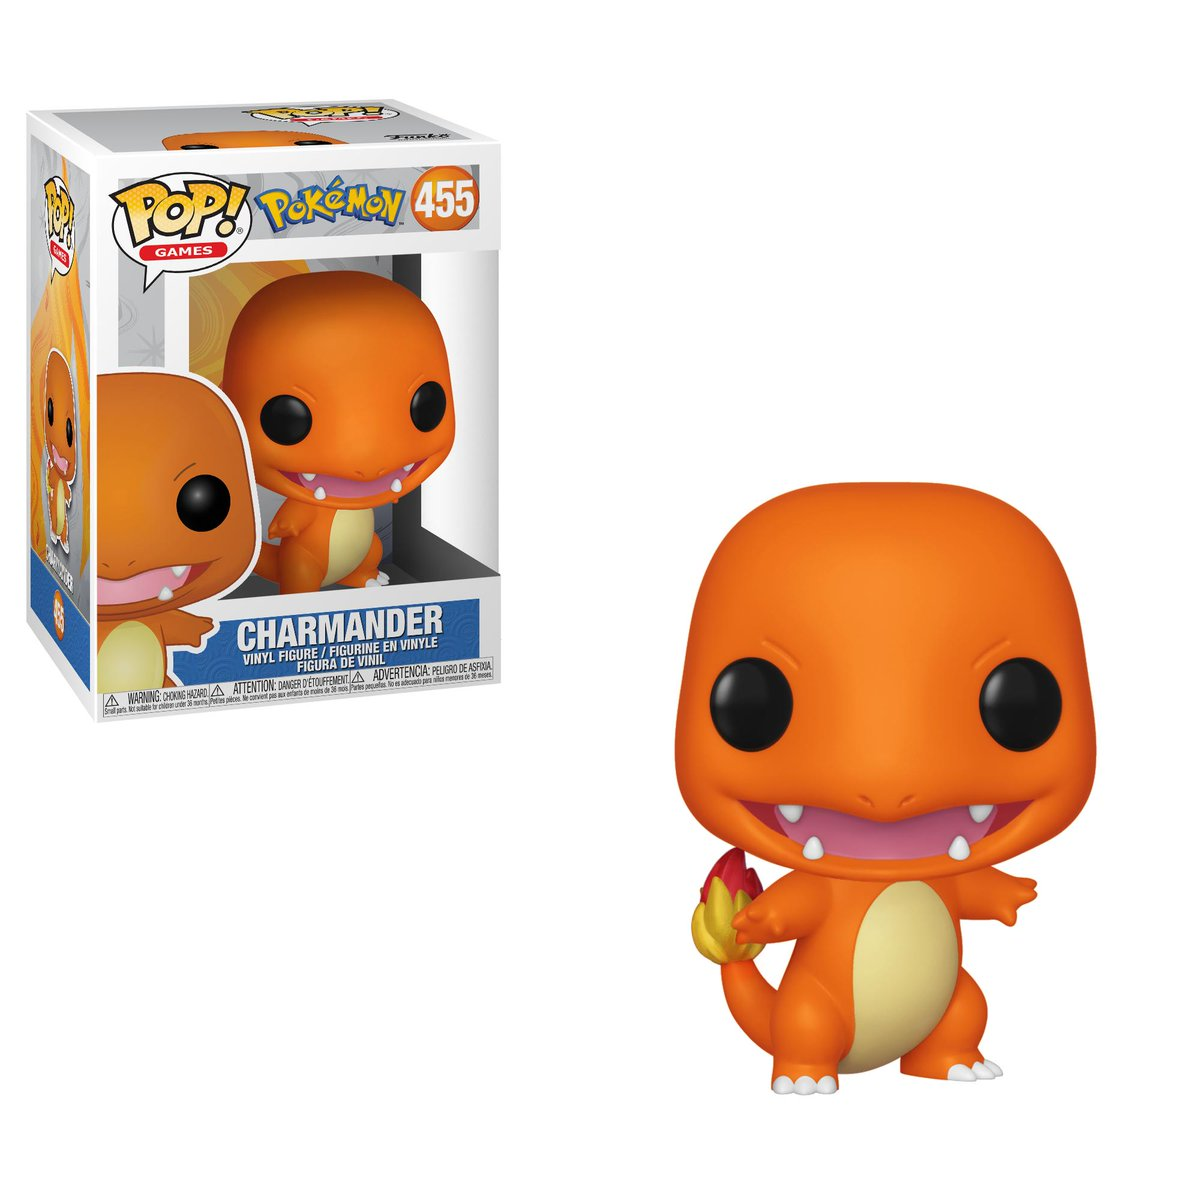 RT & follow @OriginalFunko for a chance to win a Pokémon Charmander Pop!